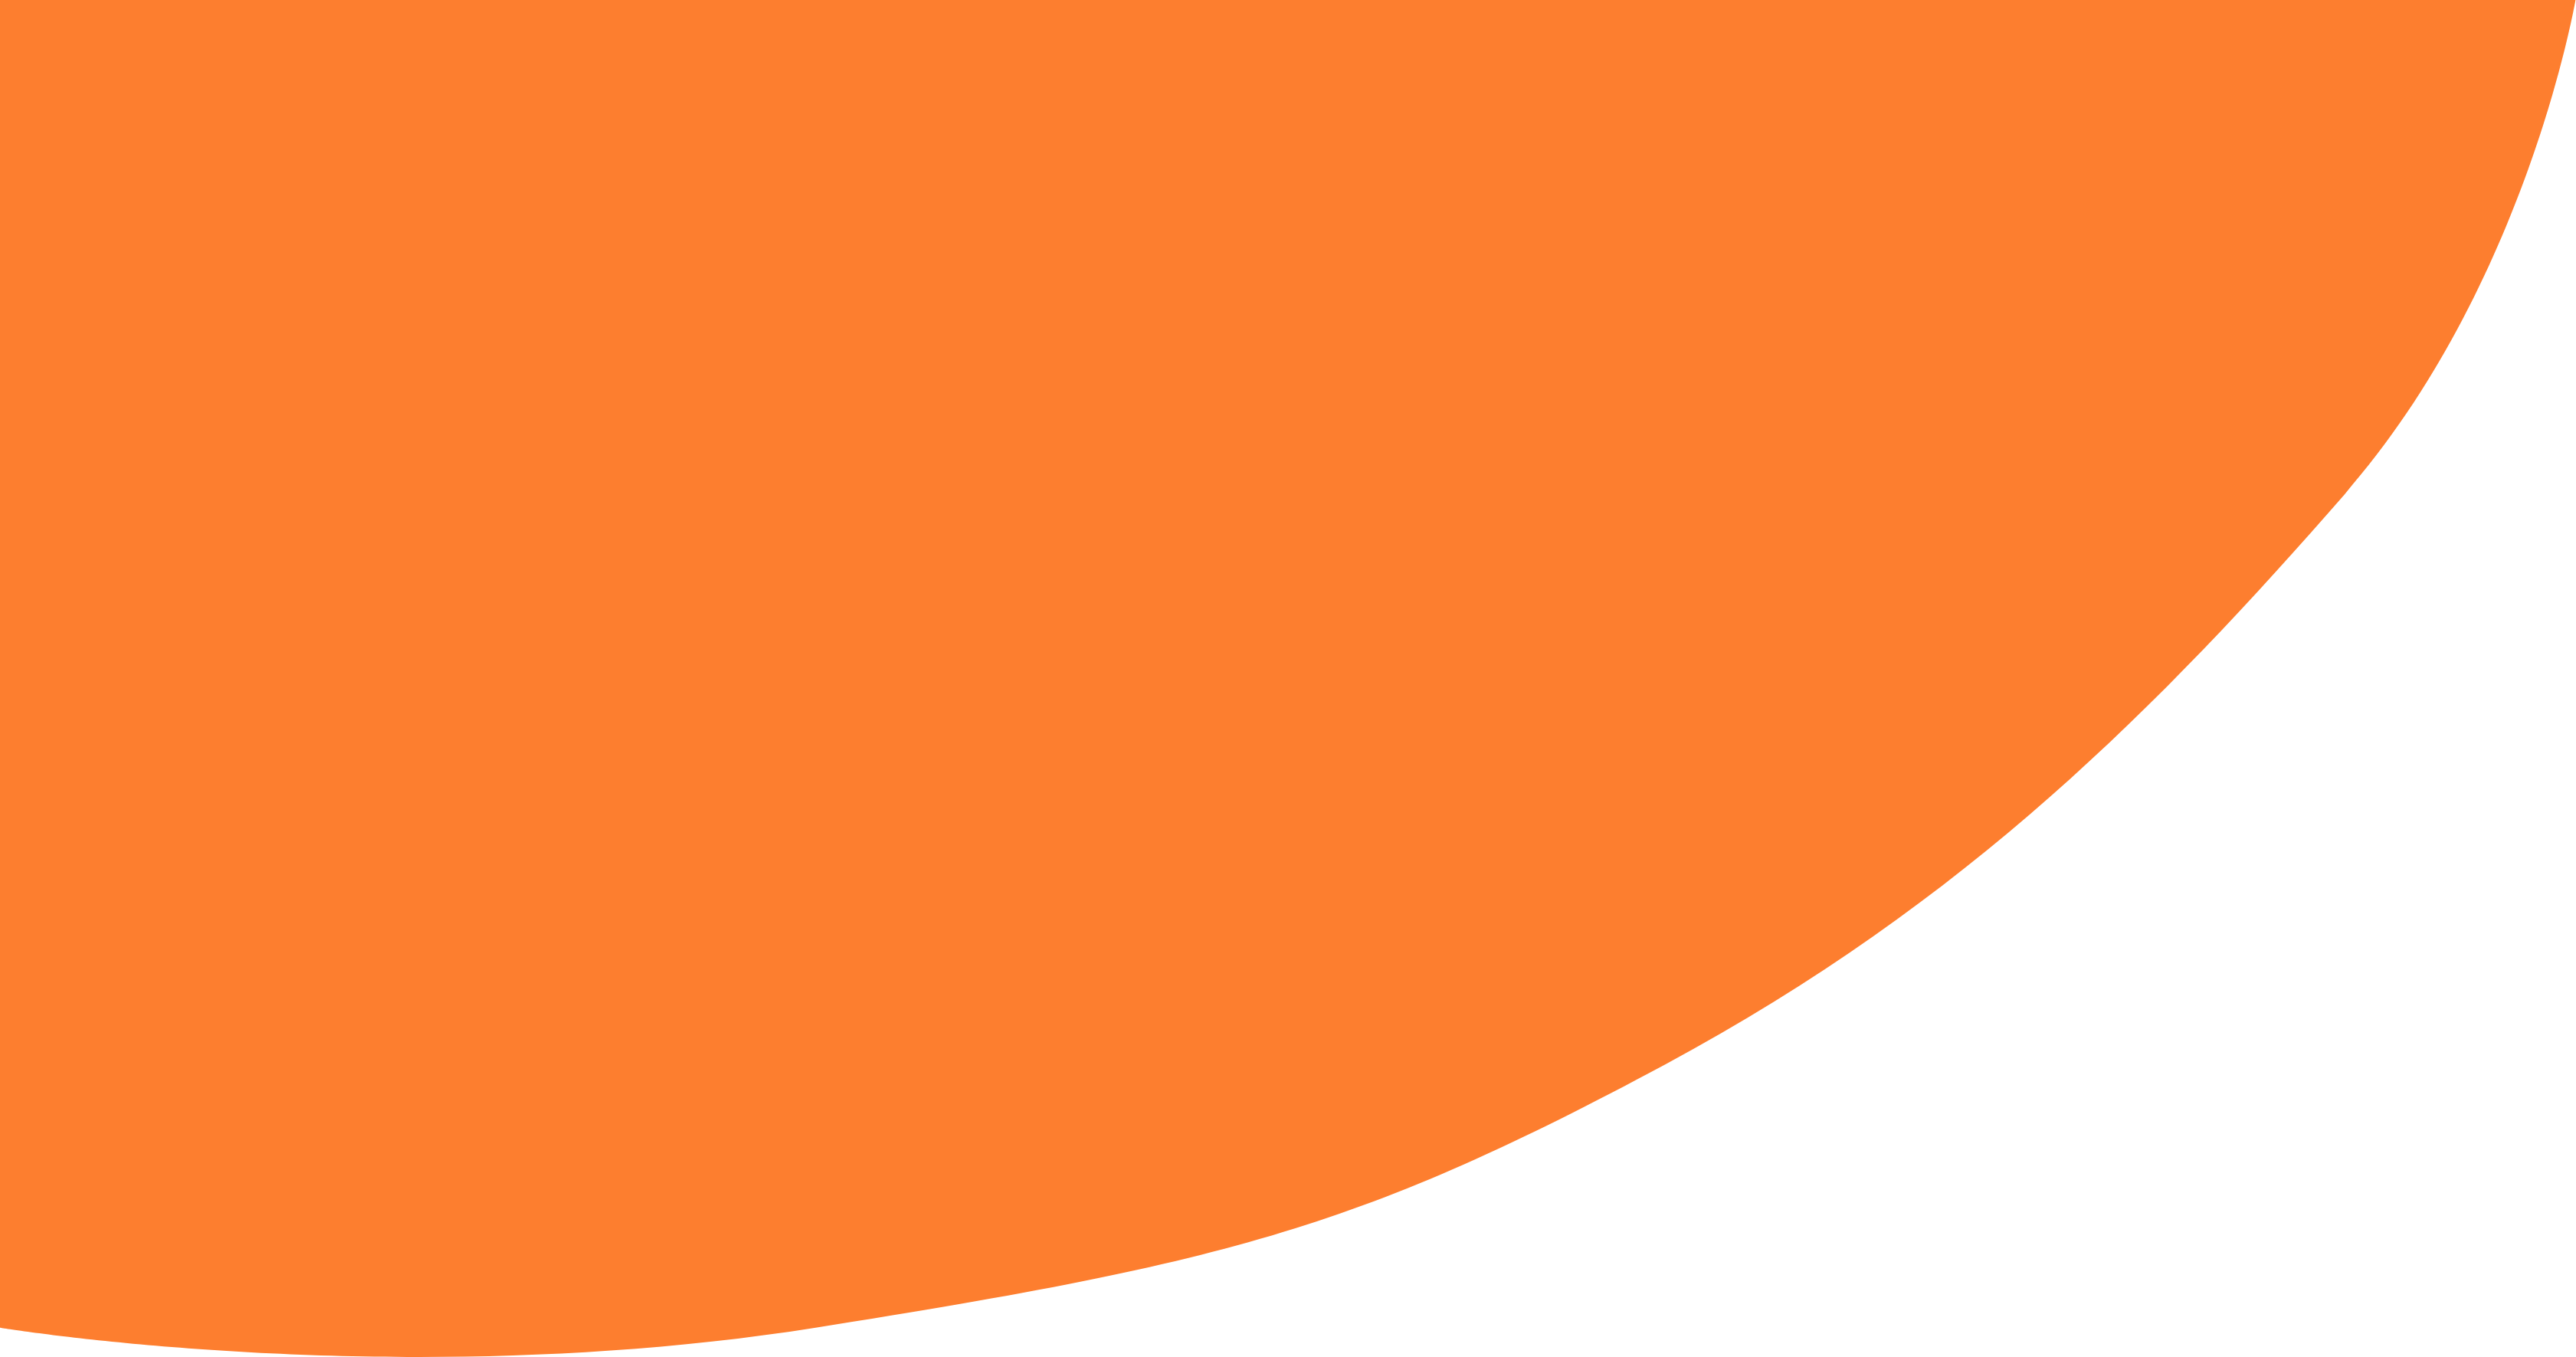 An orange arc in the background of the website.